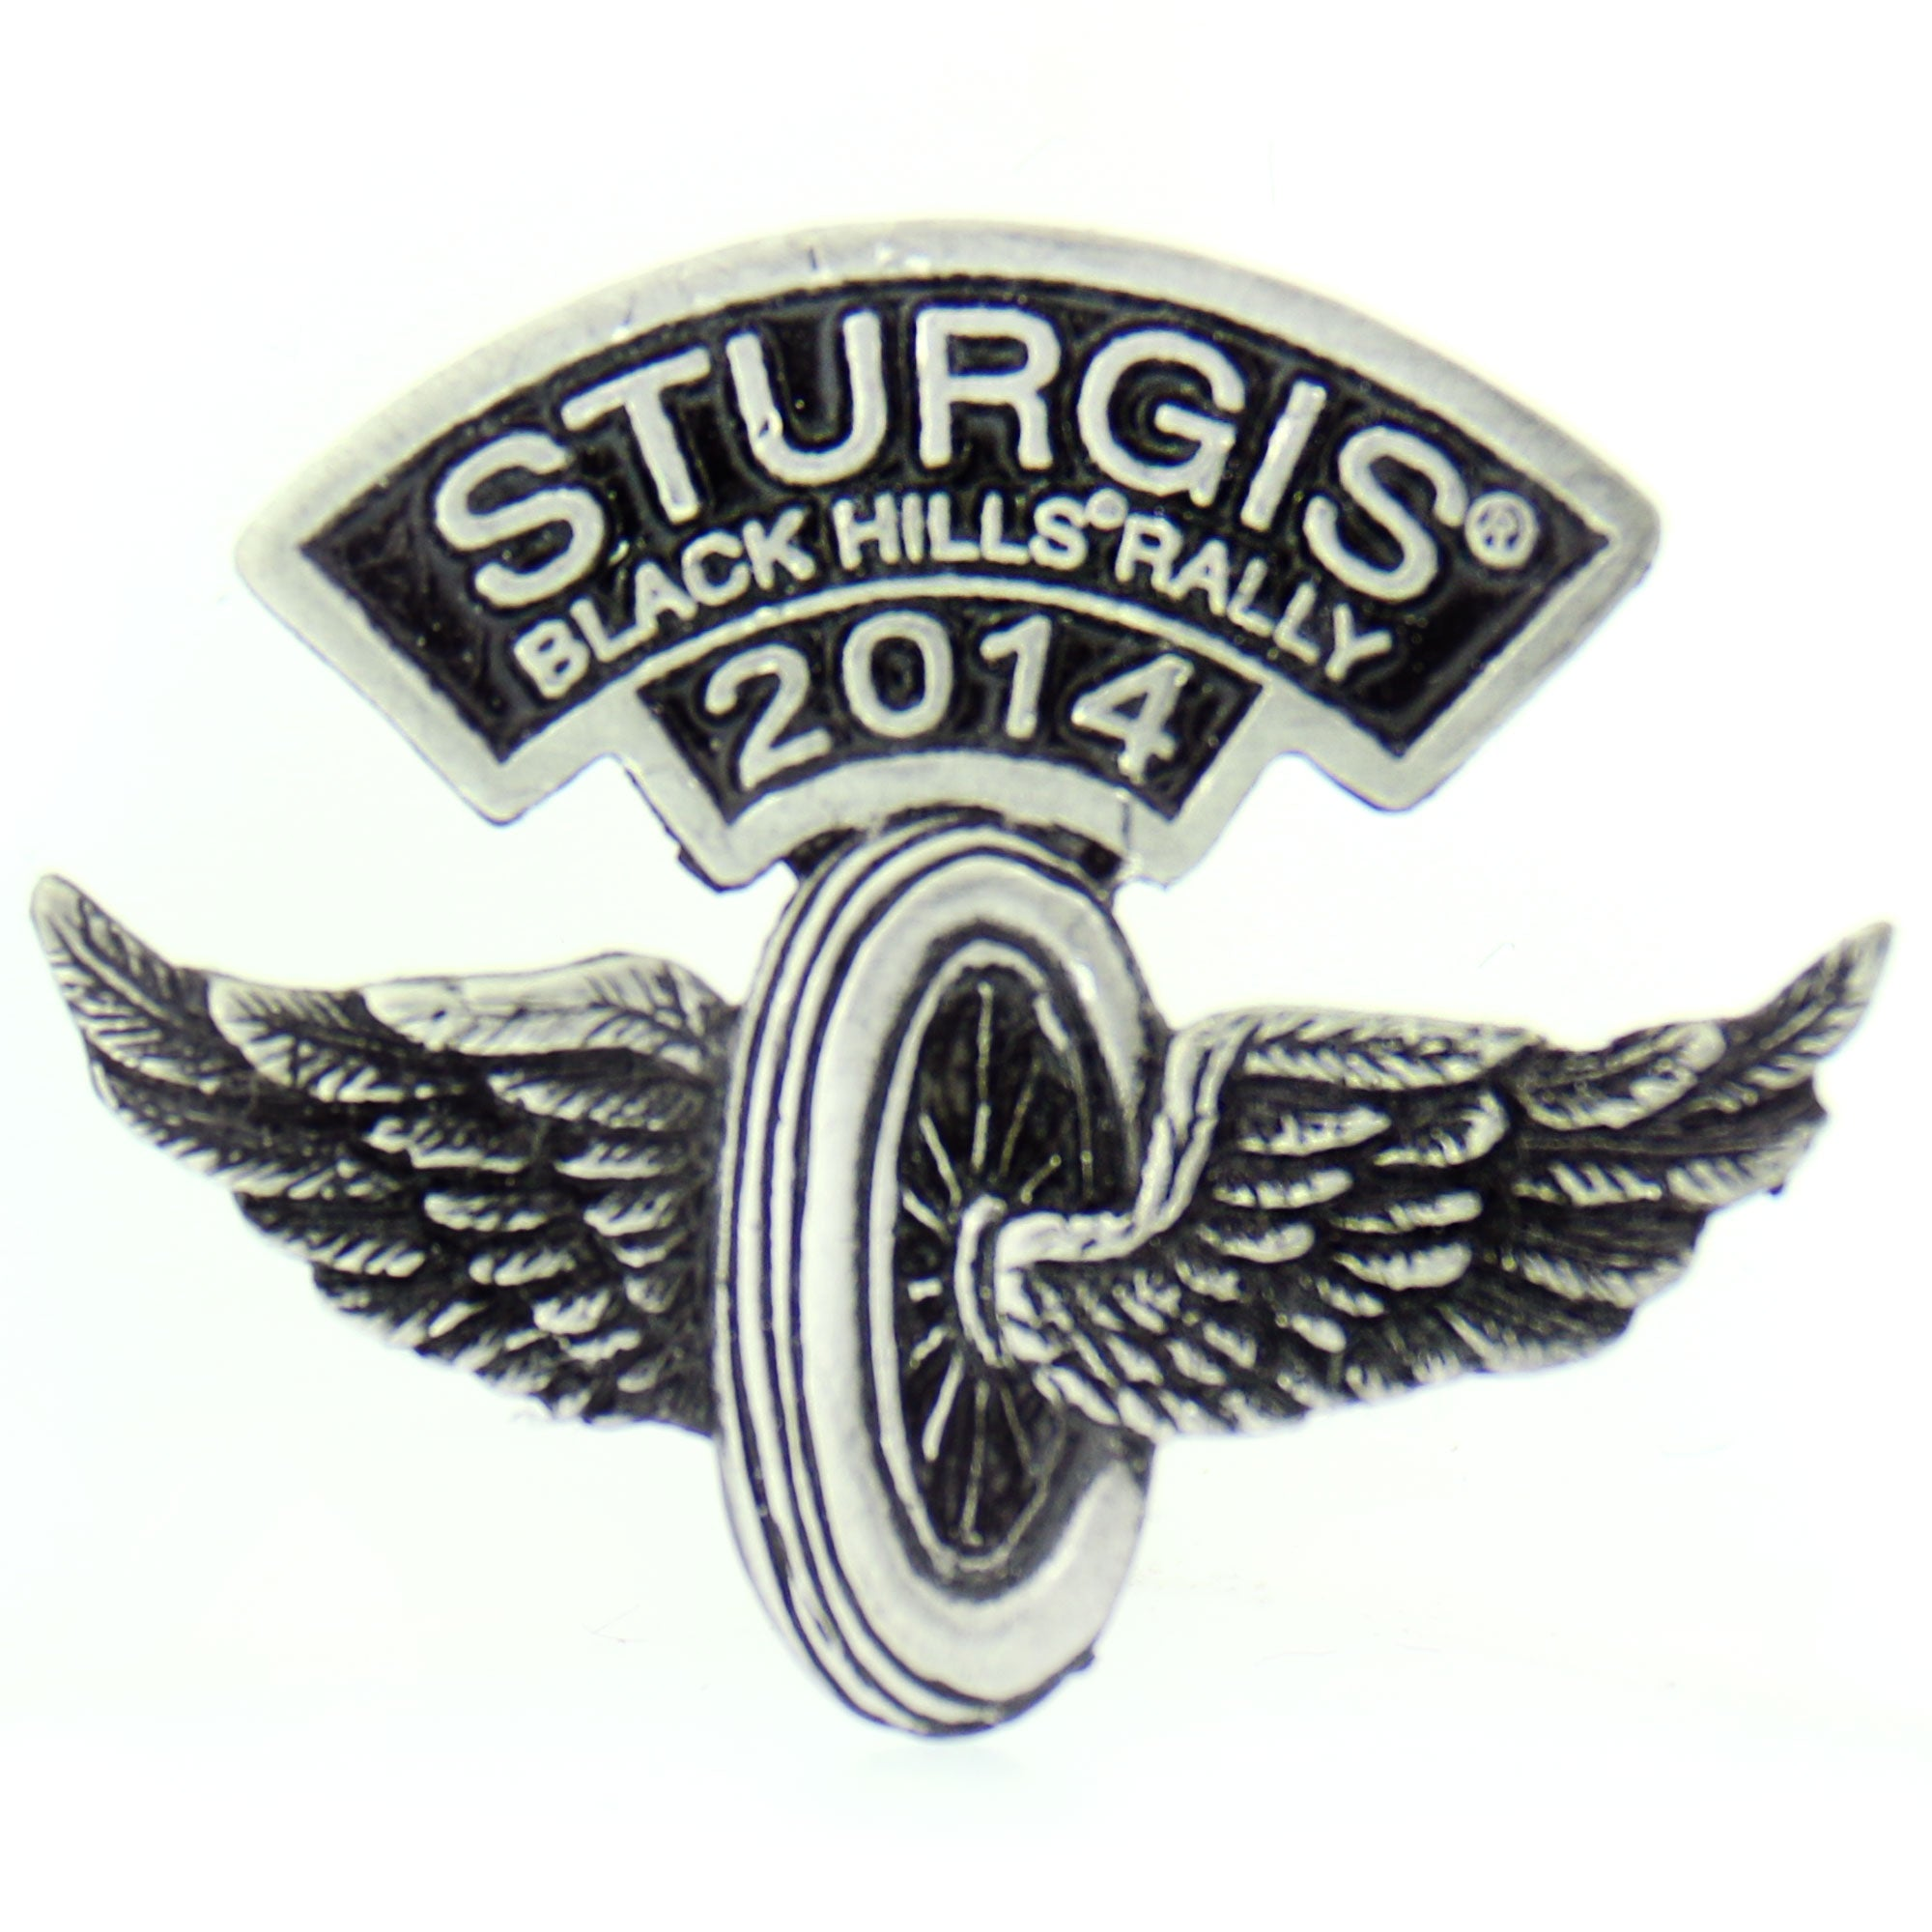 Official 2014 Sturgis Motorcycle Rally Flying Wheel Pin